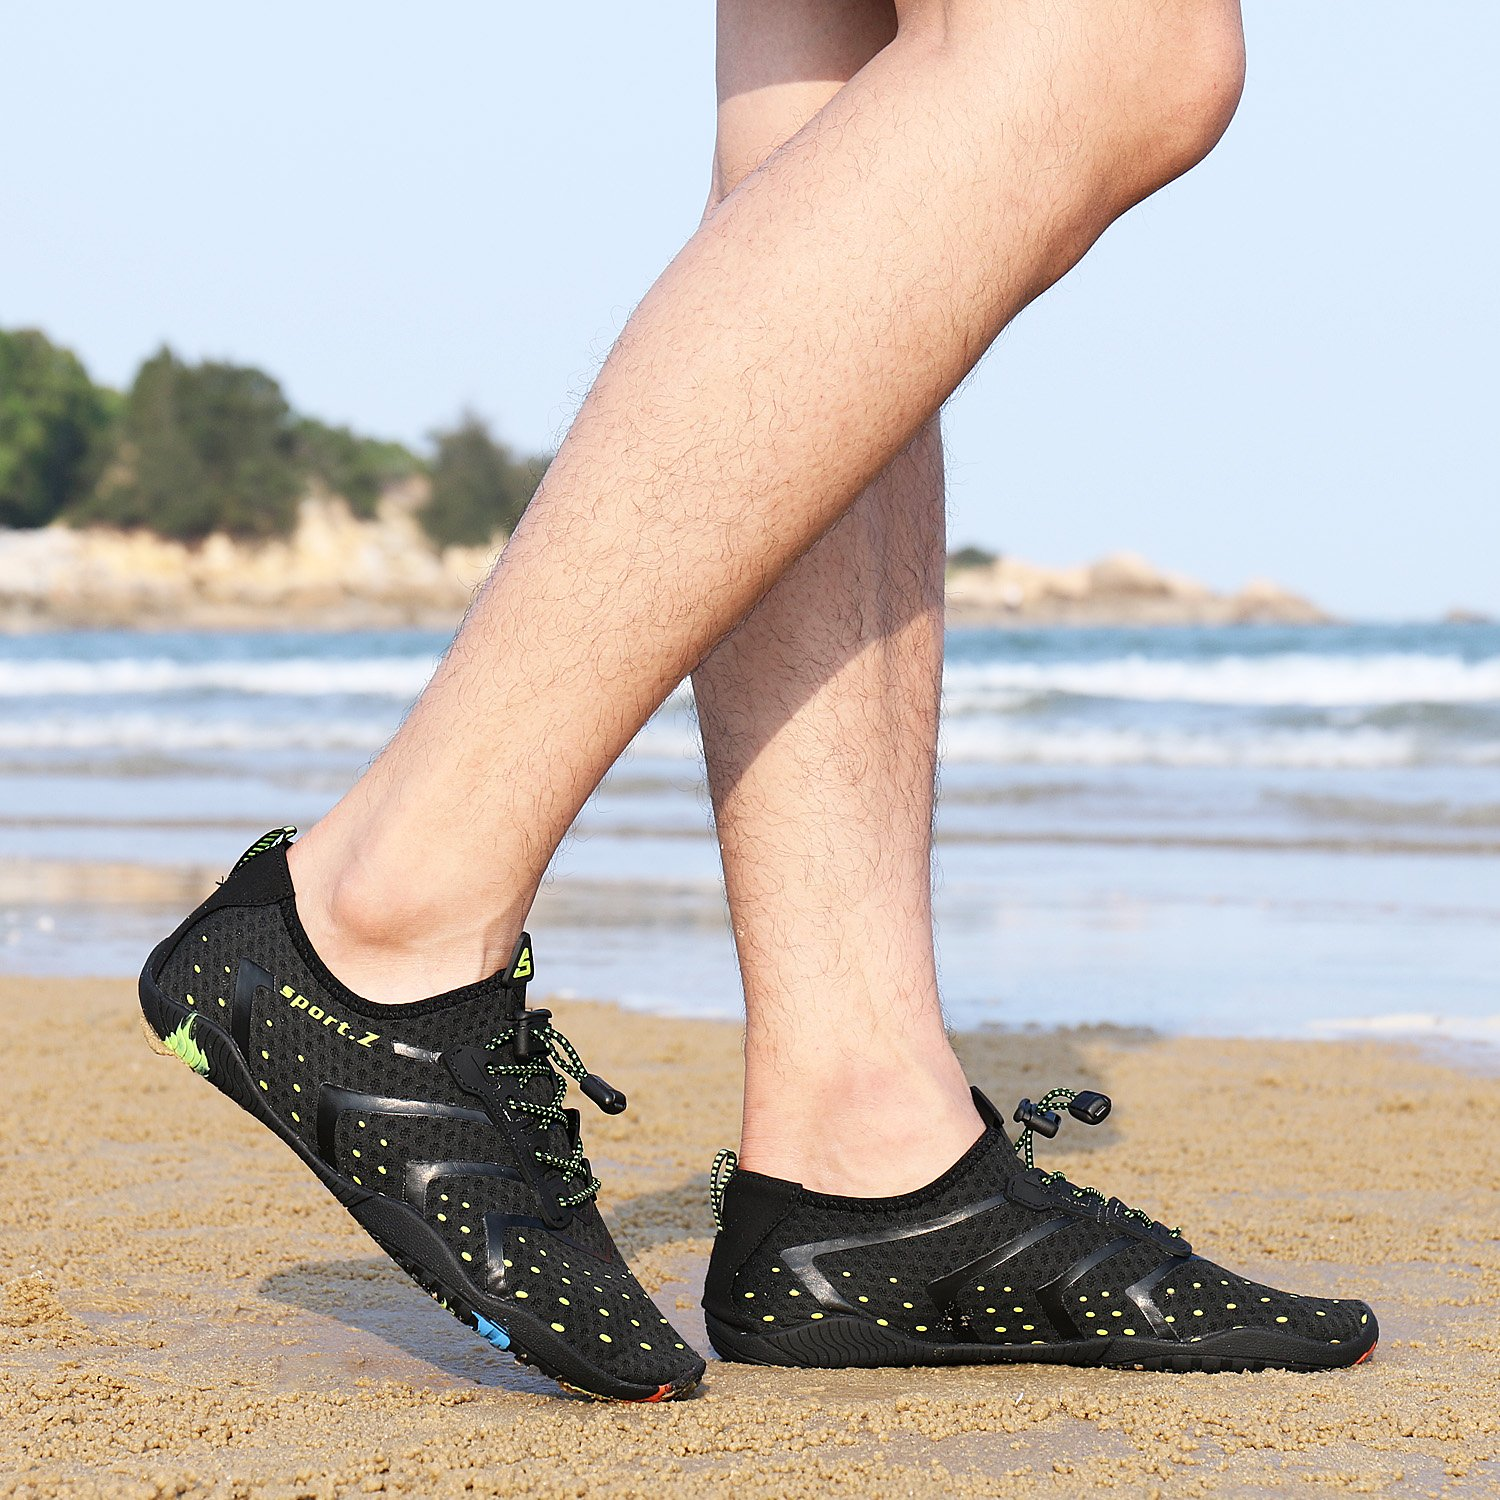 WXDZ Athletic Aqua Sock Water Shoes for Water Sport Beach Pool Boat Surfing Diving by WXDZ (Image #6)